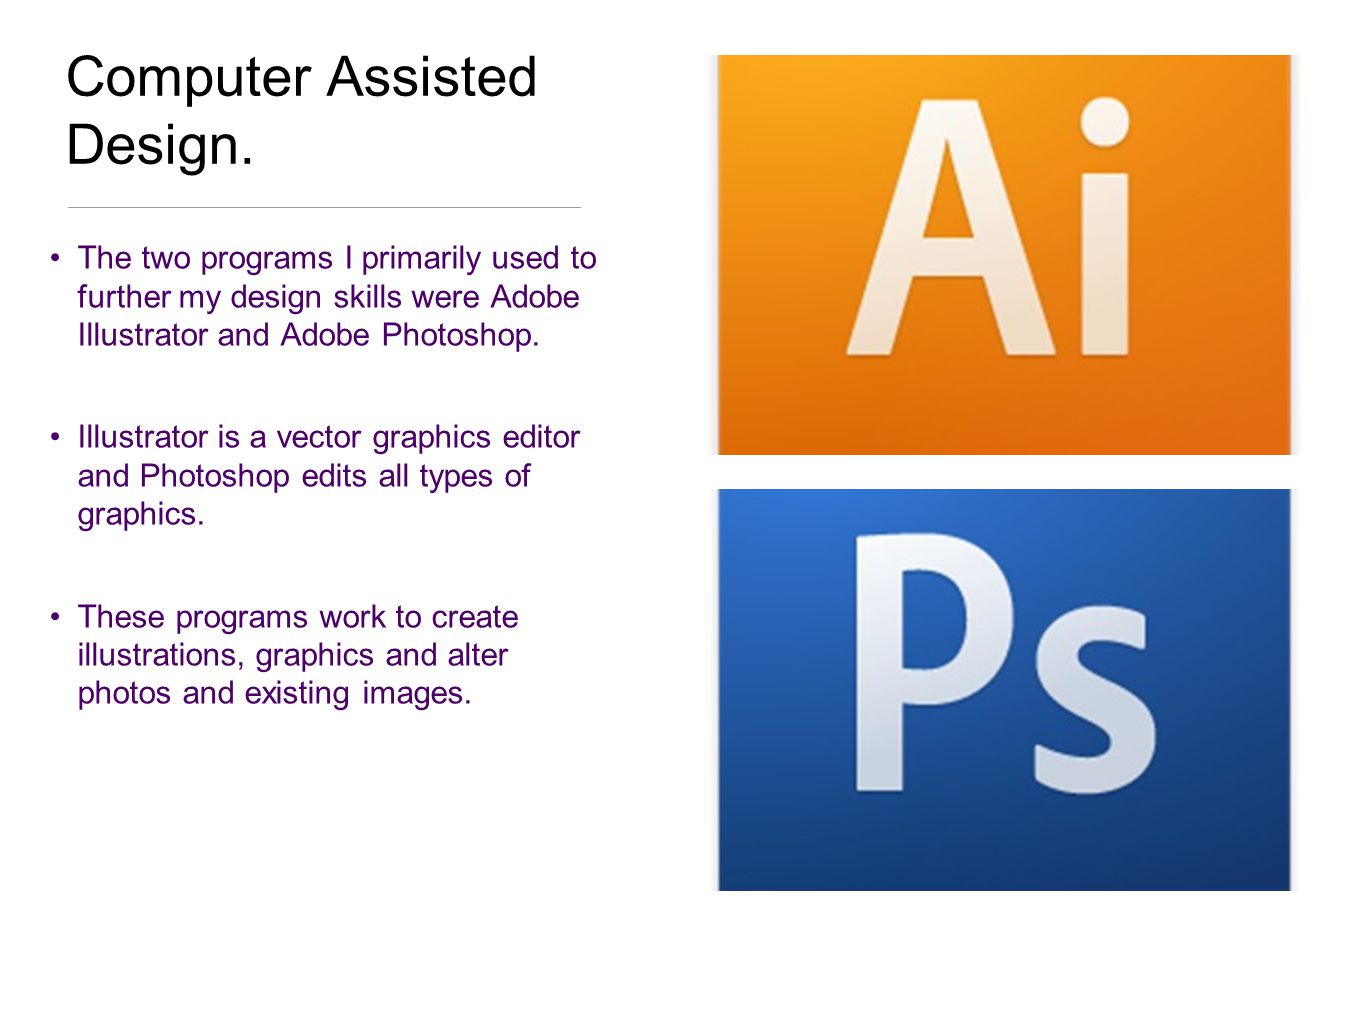 The two programs I primarily used to further my design skills were Adobe Illustrator and Adobe Photoshop.